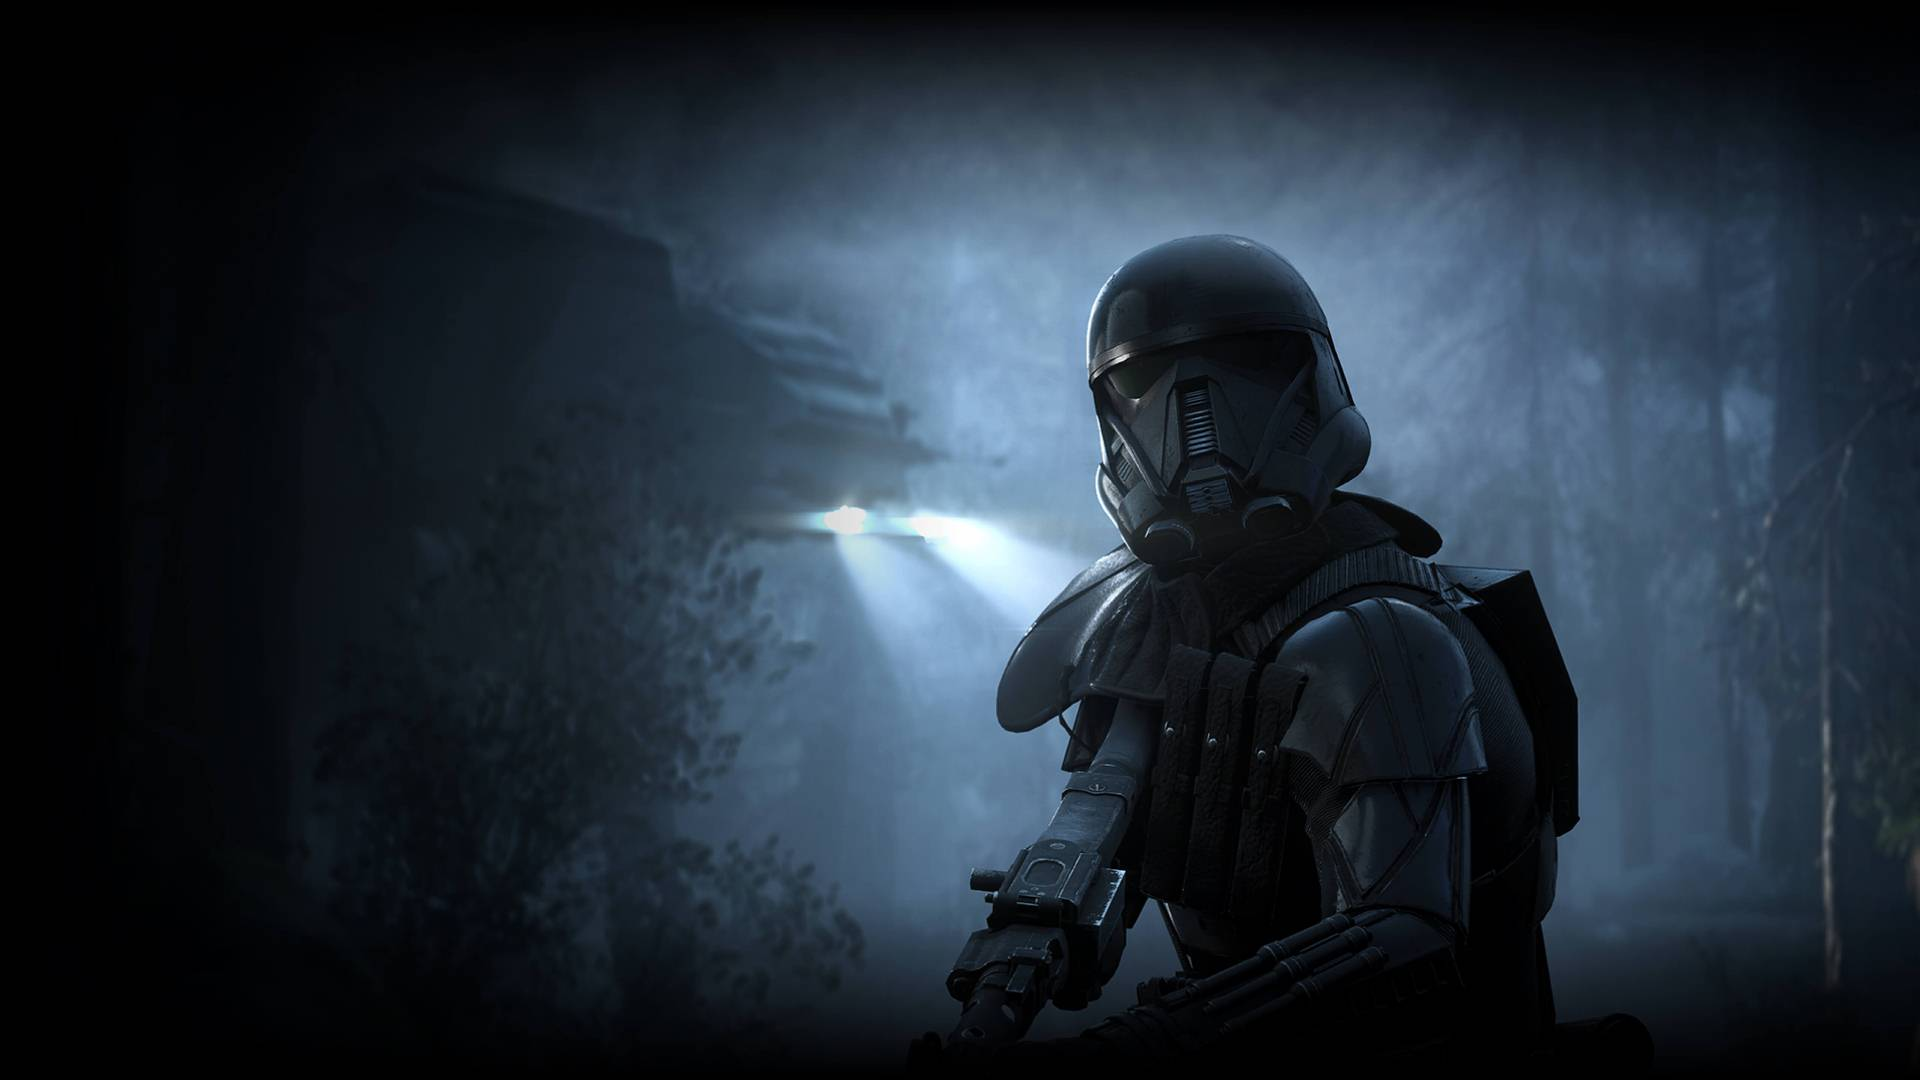 Clone Trooper Wallpaper 1920x1080 Posted By Sarah Thompson